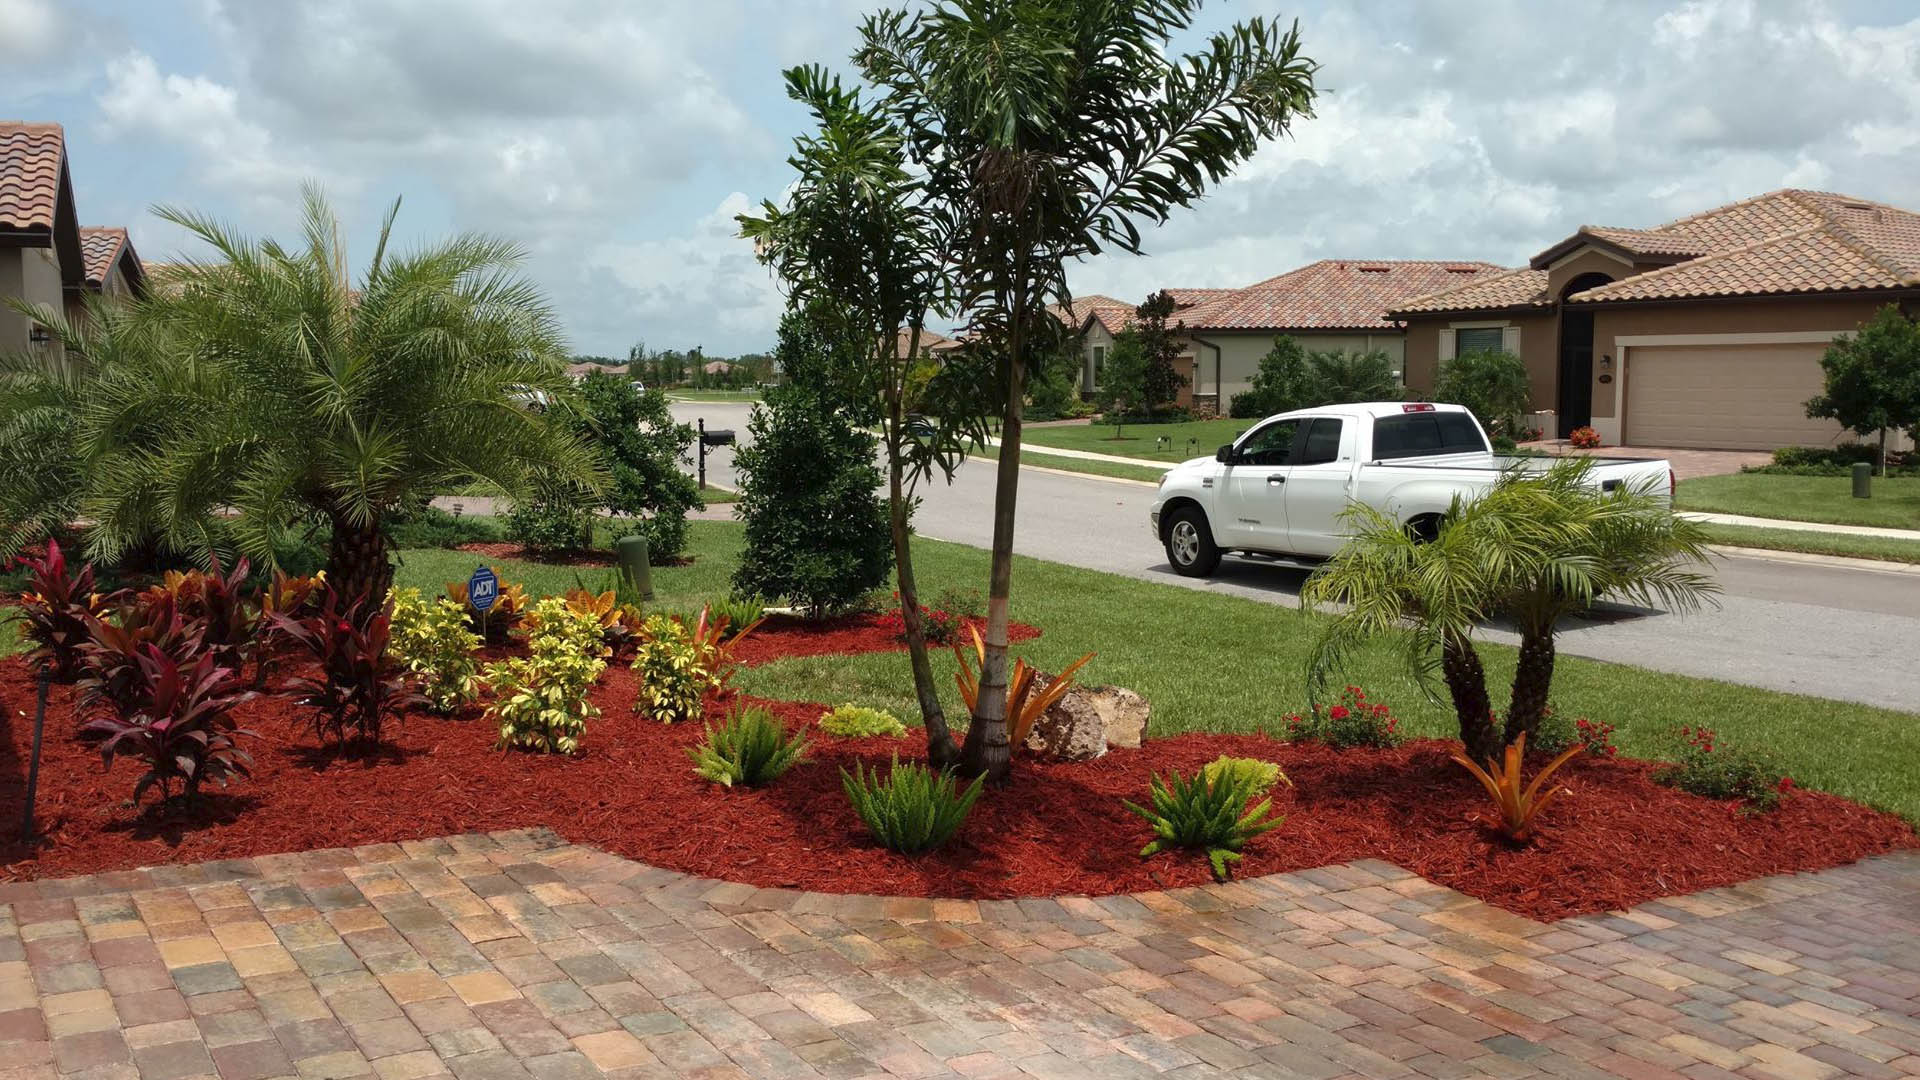 New landscaping in round bed by Three Seasons in Palmetto, FL.